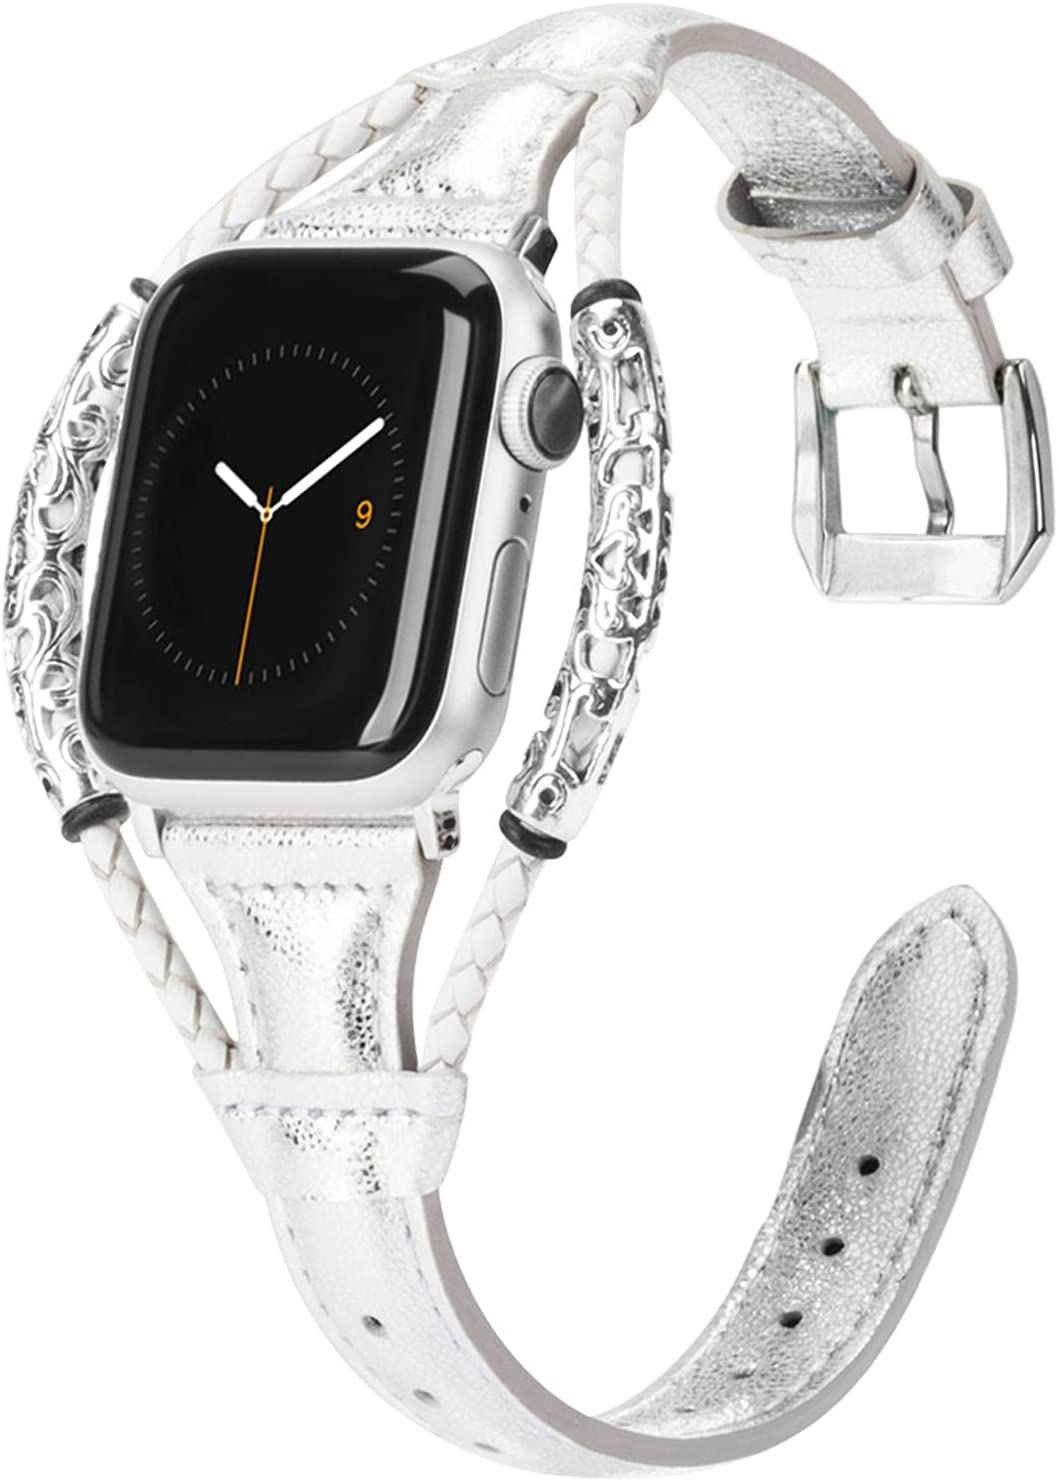 Moolia Vintage Leather Band Compatible with Apple Watch Bands 44mm 42mm Women, Genuine Leather iWatch Bands Straps Wristbands Bracelet Accessories for Apple Watch Band Series 6 5 4 3 2 1 SE, Silver